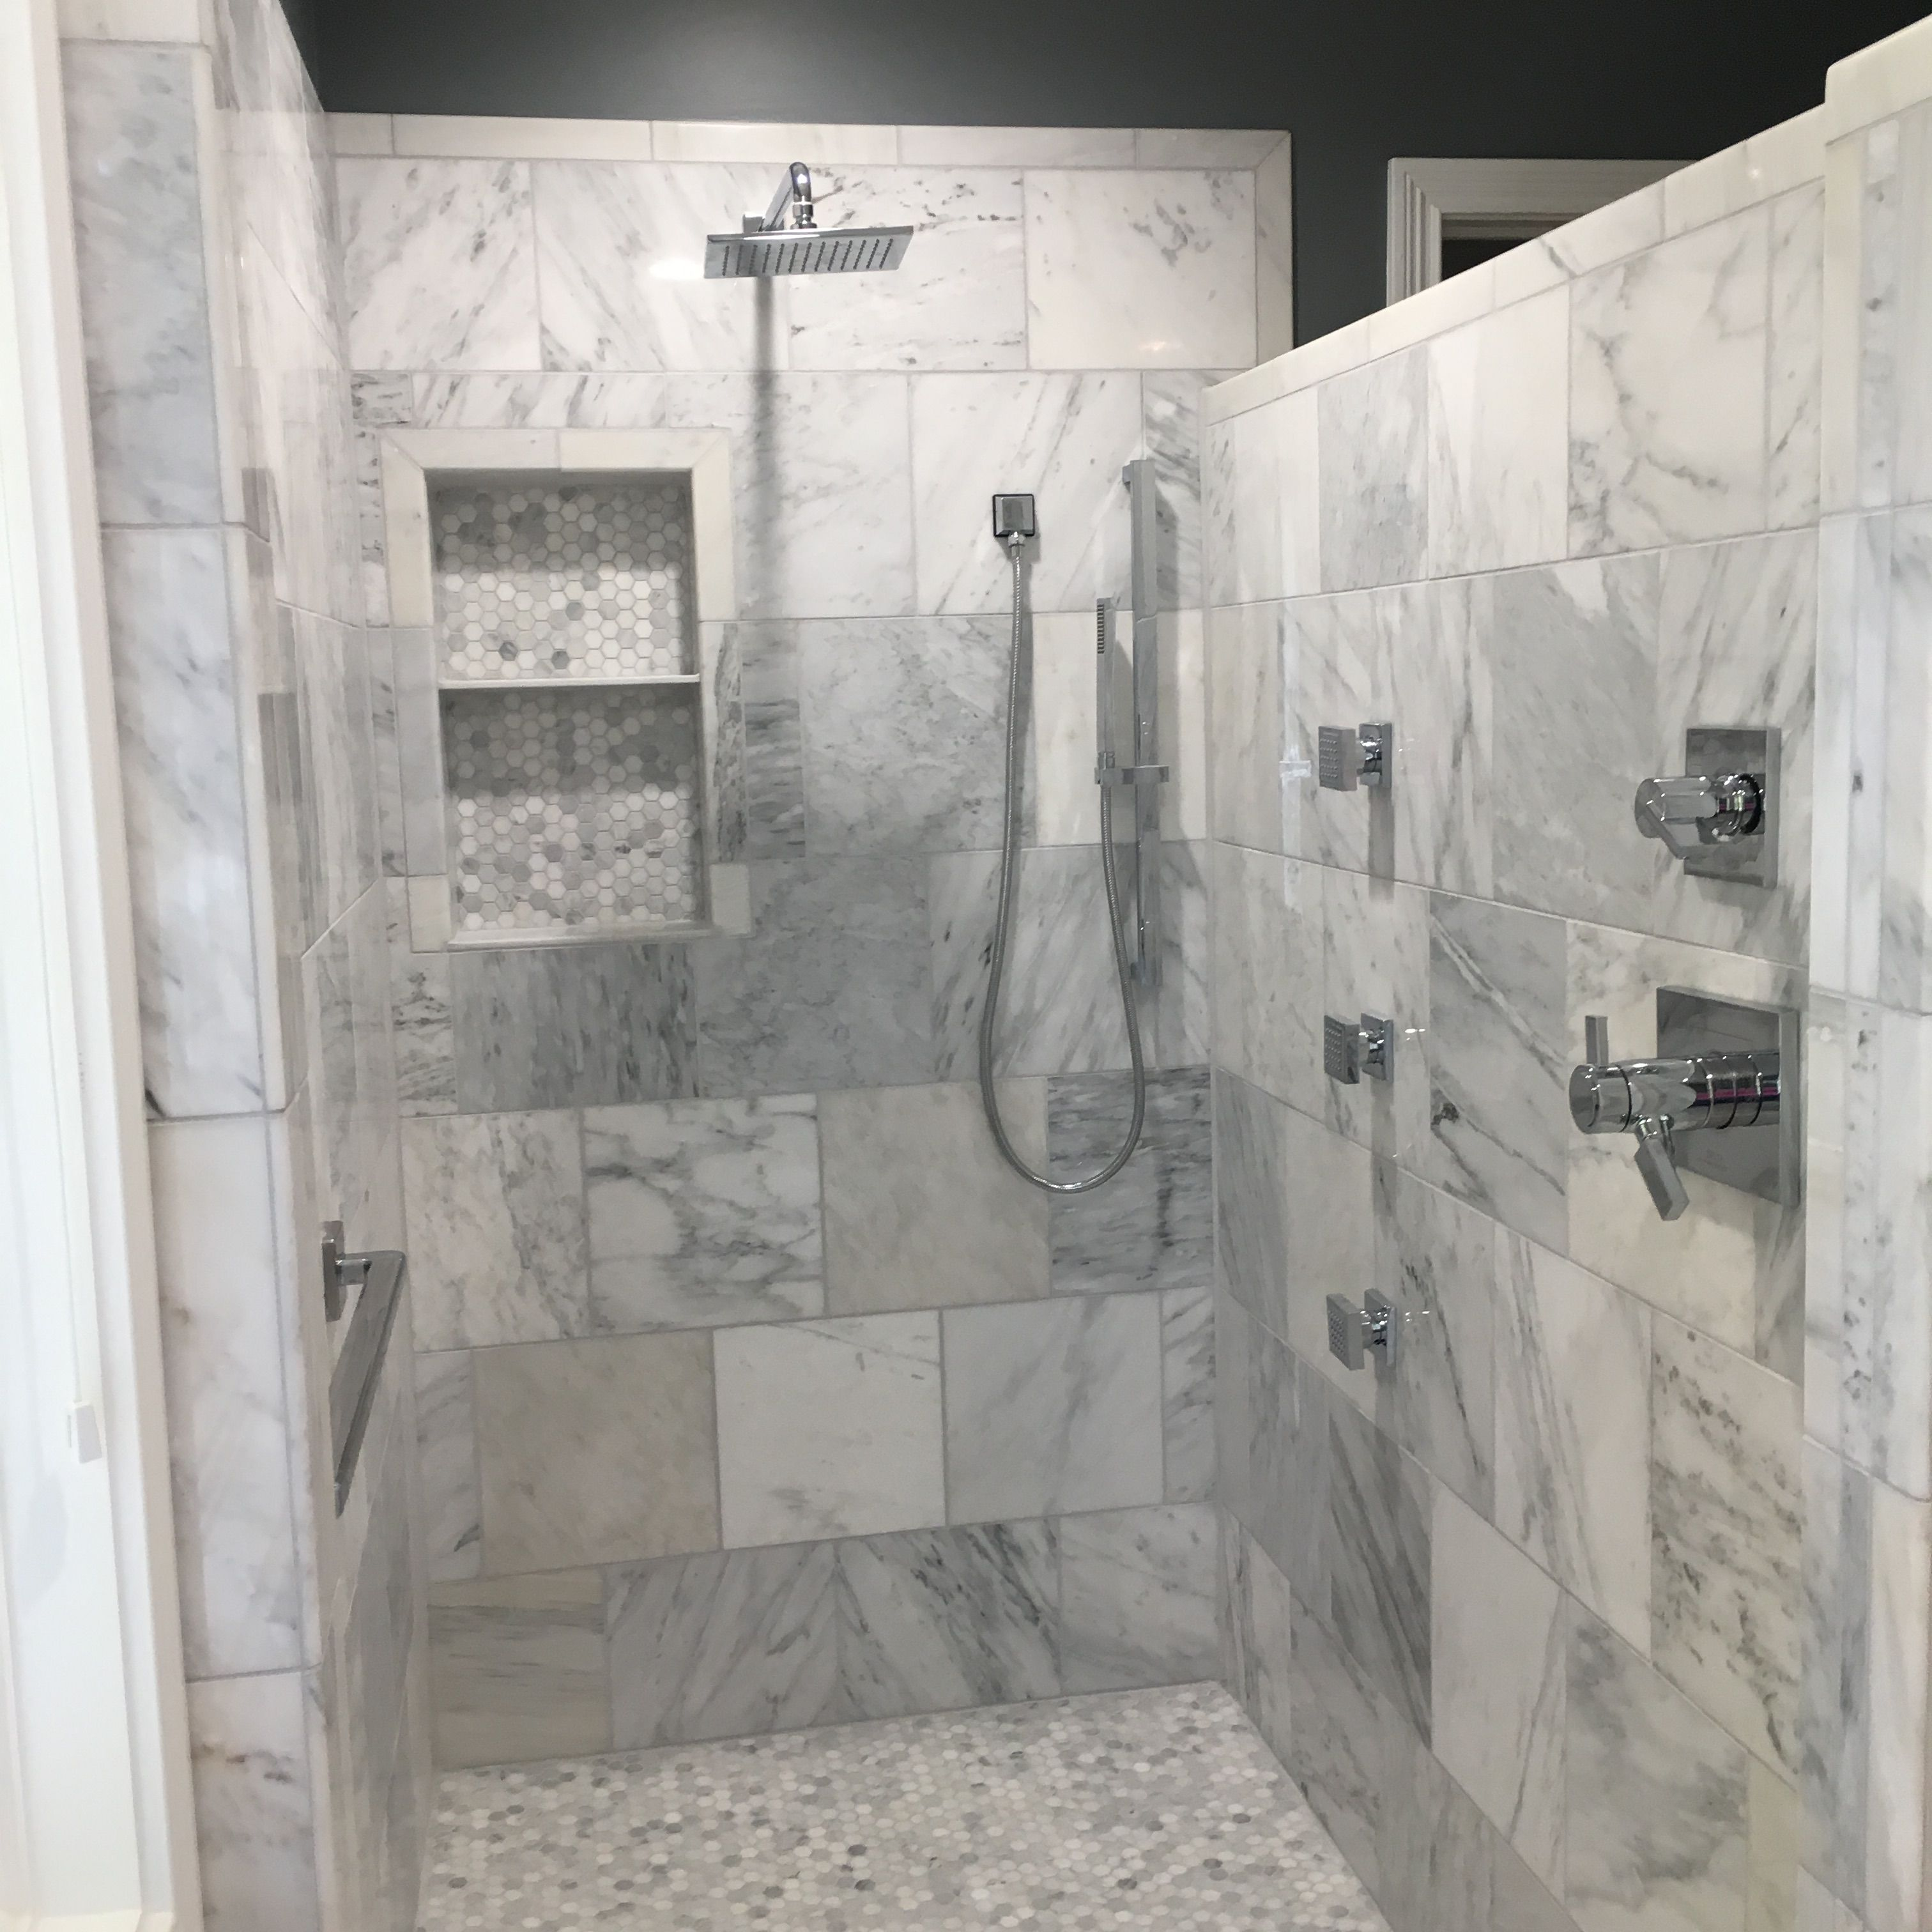 Carrera Marble Walk In Shower With Rain Shower Head Handheld And Three Body Jets Delta Vero Fixtures And Built In With Images Marble Shelf Shower Heads Rain Shower Head